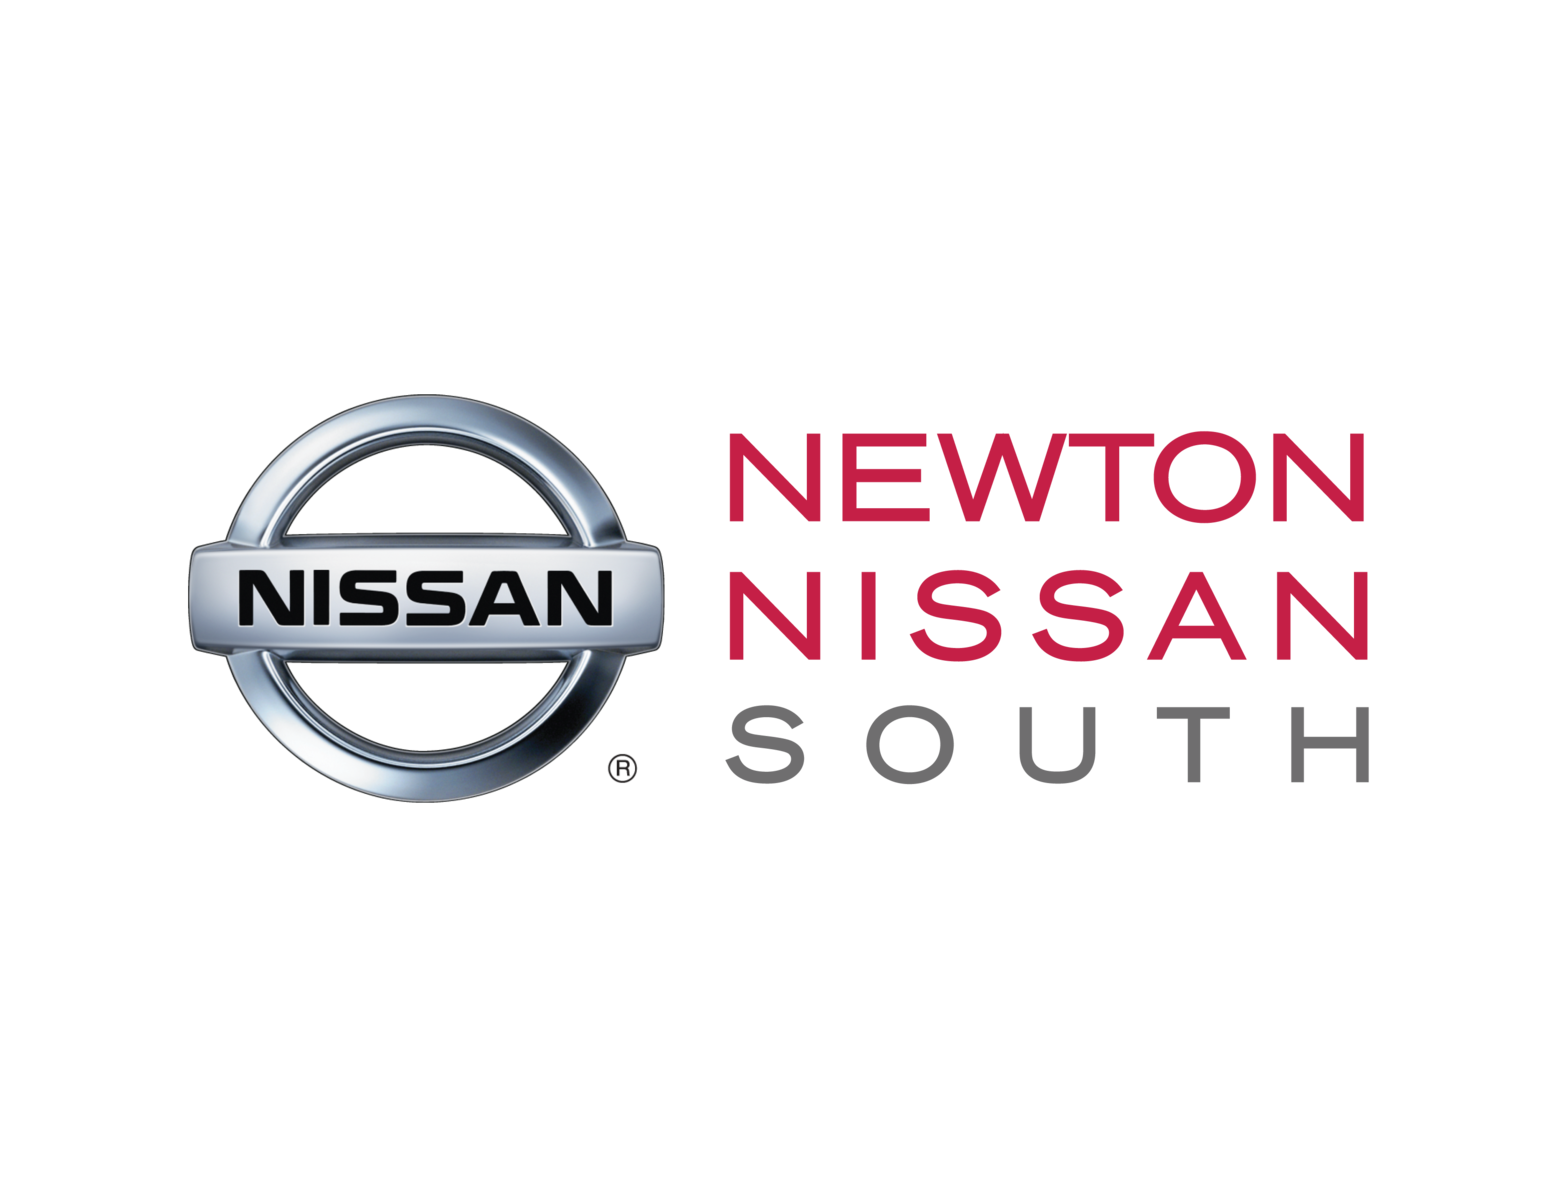 Newton Nissan South >> Newton Nissan South - Shelbyville, TN: Read Consumer reviews, Browse Used and New Cars for Sale